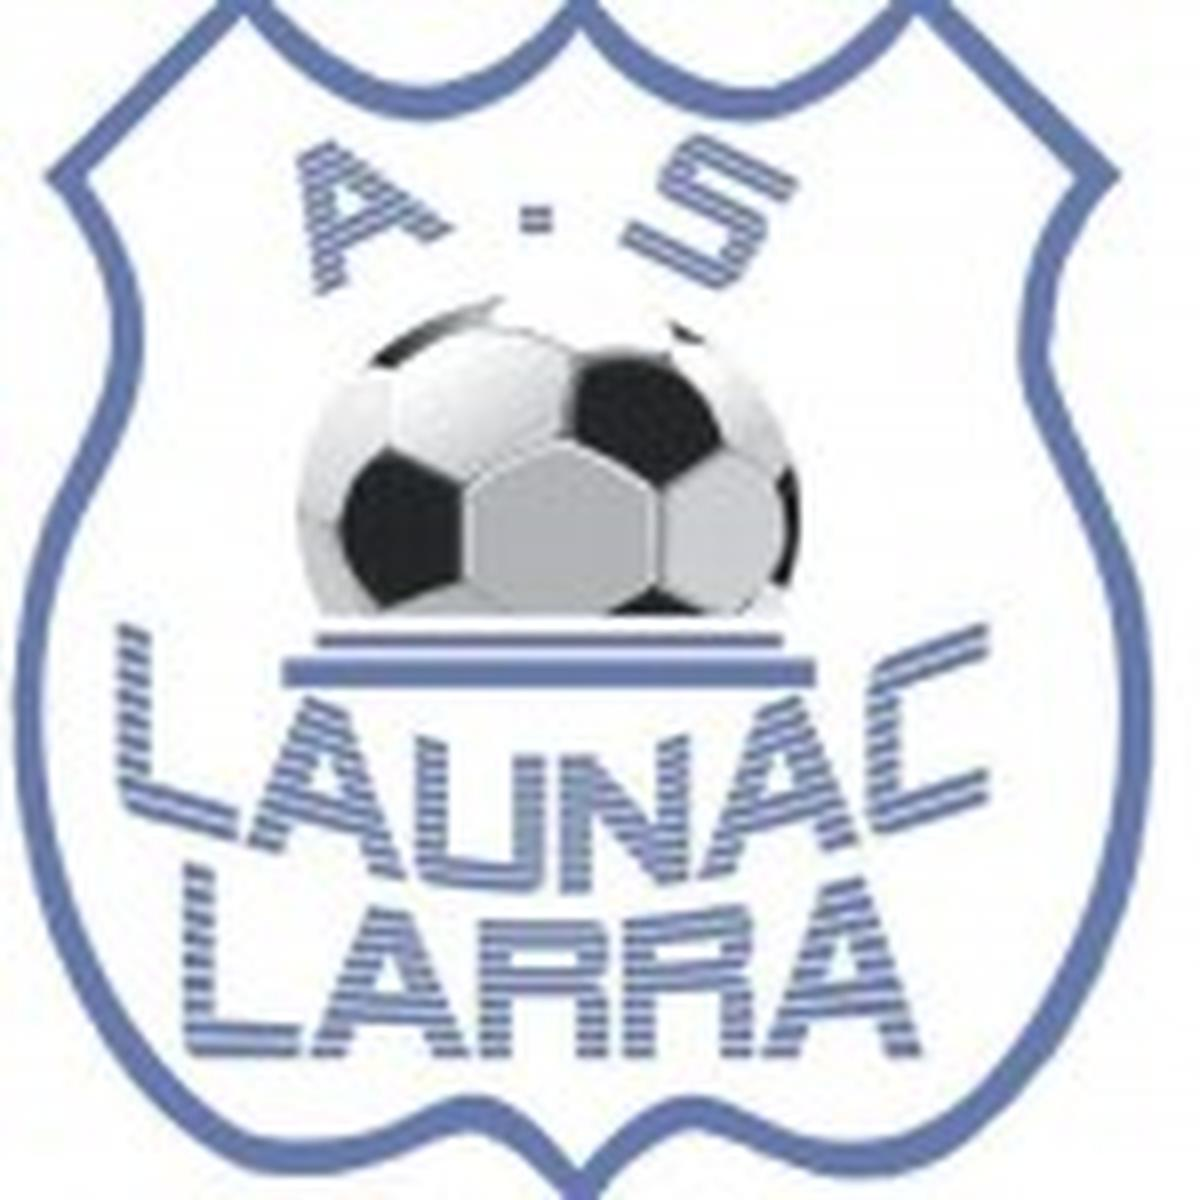 AS LAUNAC LARRA